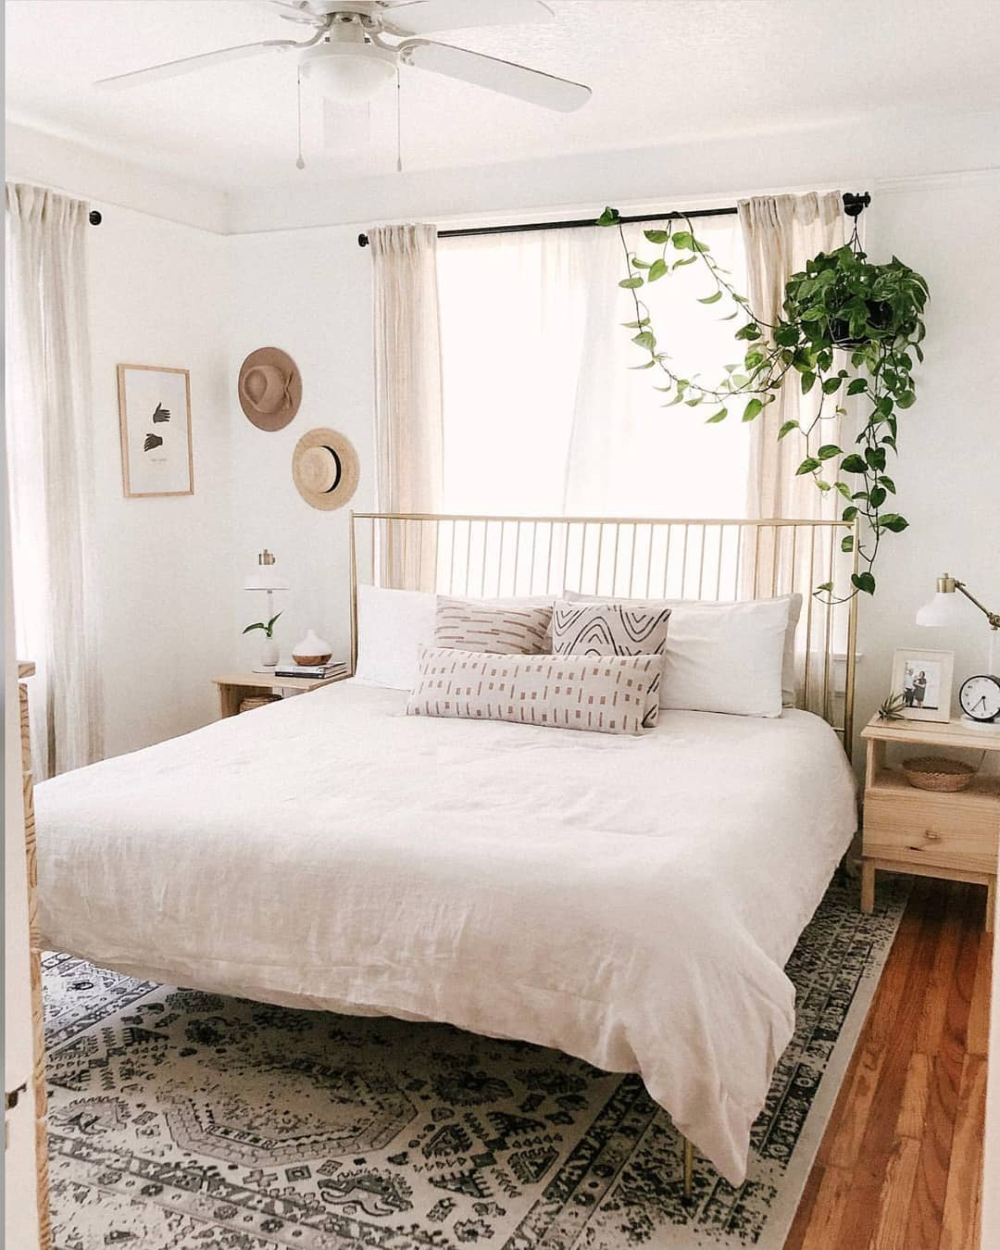 "Bohemian Inspirations on Instagram: ""🌿The serene room of Carla Natalia is simply heavenly 💖. Don't you think? 😉 📷@carlanatalia__ . . . . . #modernbohemian #lightandbright…"""